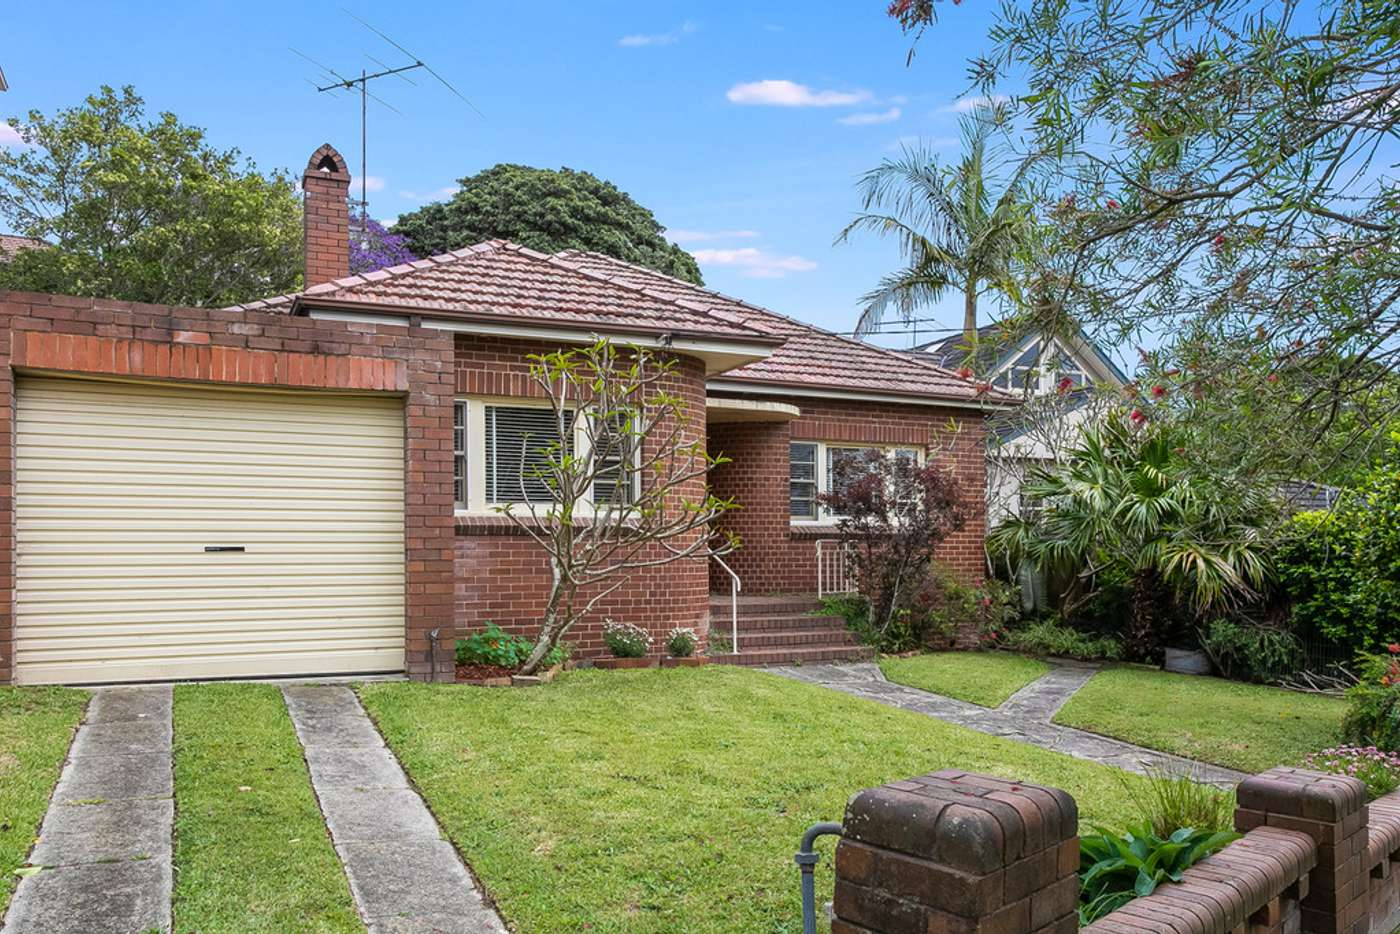 Main view of Homely house listing, 34 Rutland Ave, Castlecrag NSW 2068